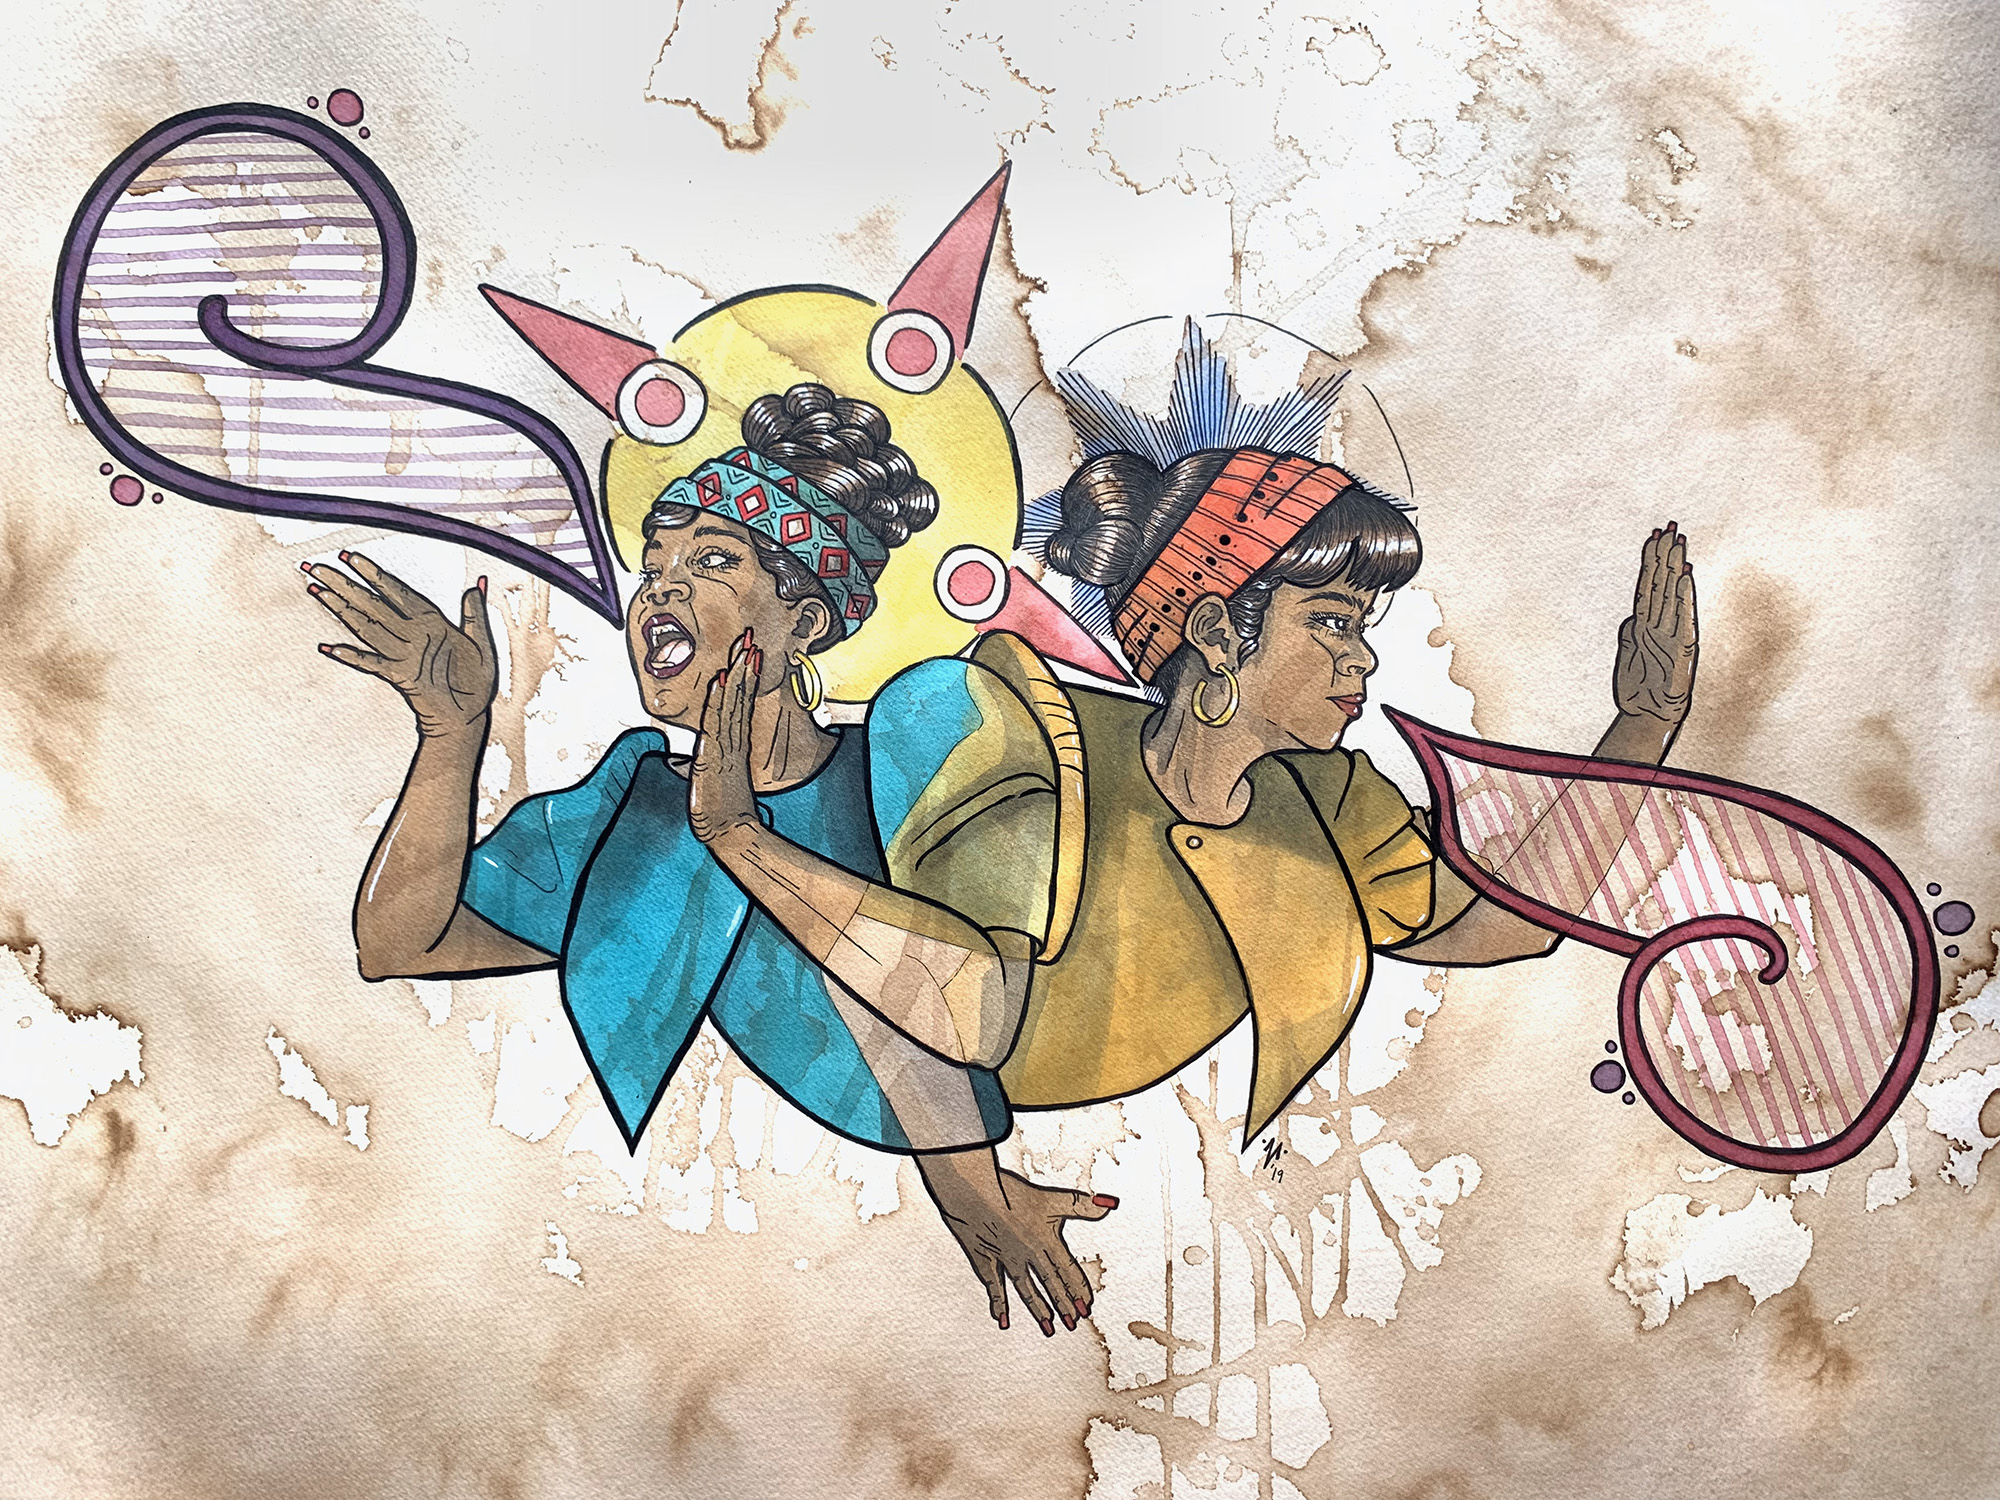 An illustration featuring two women, with their backs to each other, each facing the opposite direction. One, on the left in blue, has her mouth open as if sending out a call. The other in yellow, has one arm outstretched